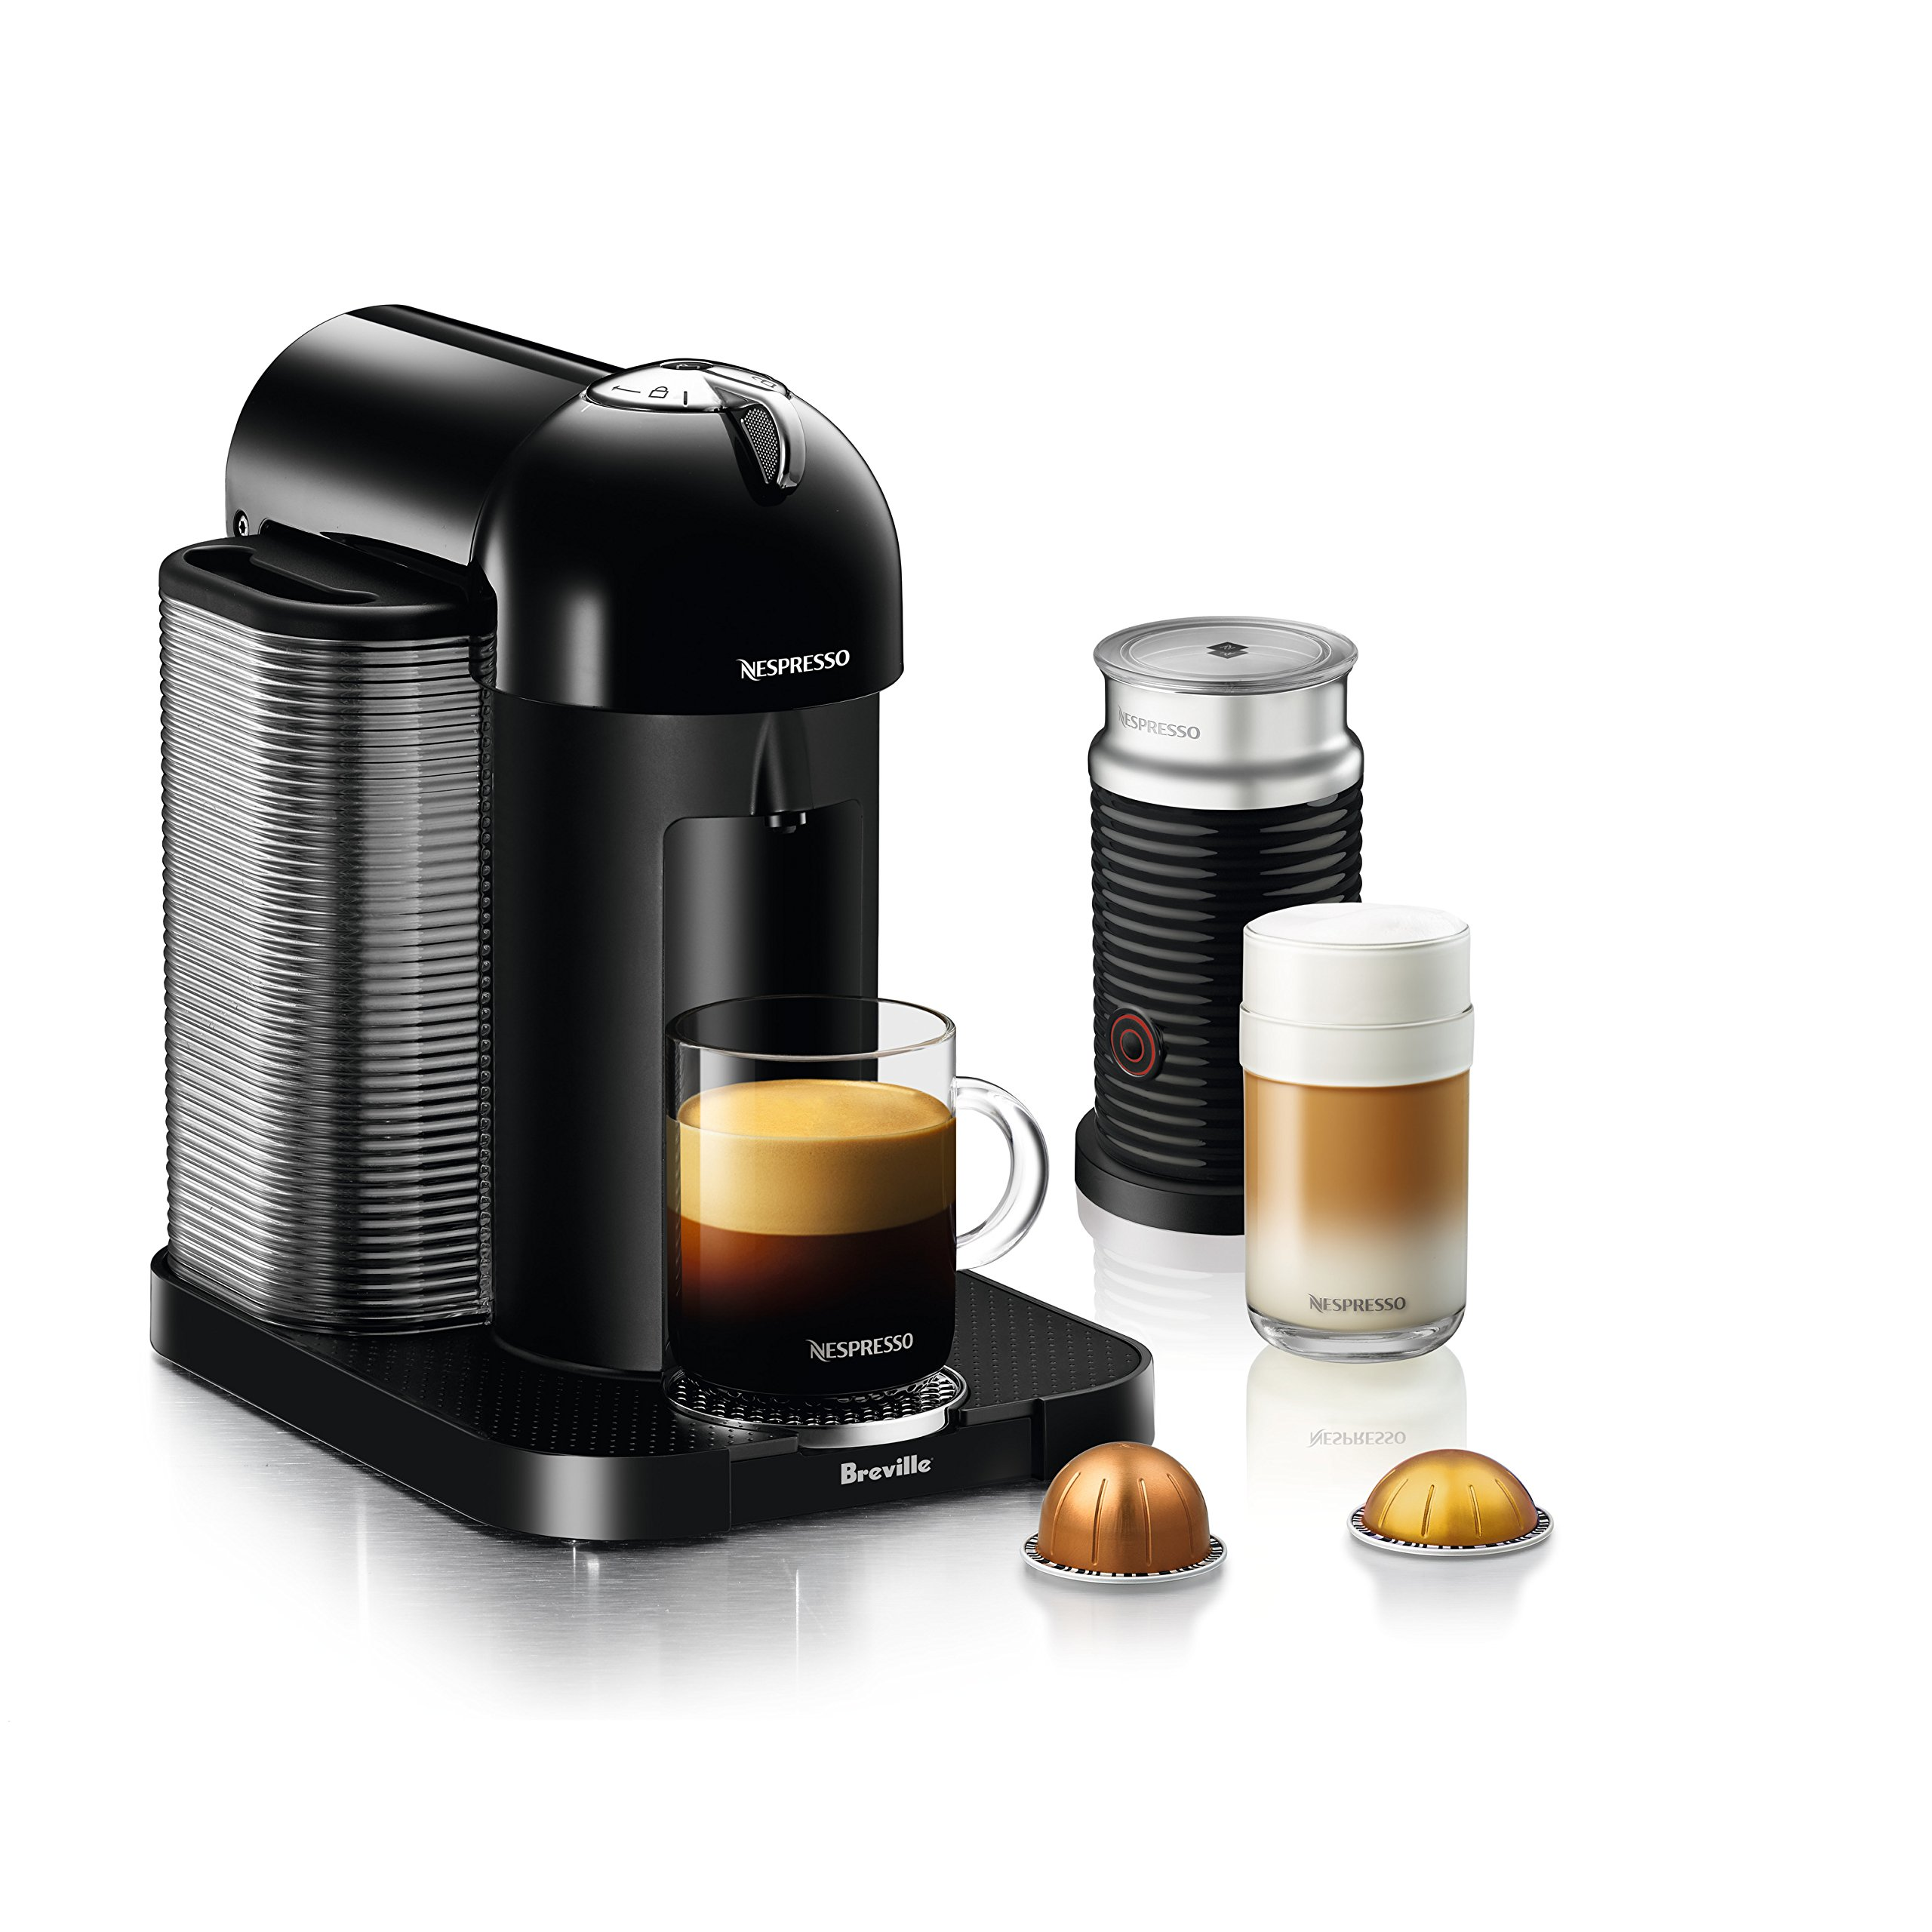 Nespresso Vertuo Coffee and Espresso Machine Bundle with Aeroccino Milk Frother by Breville, Black by Breville